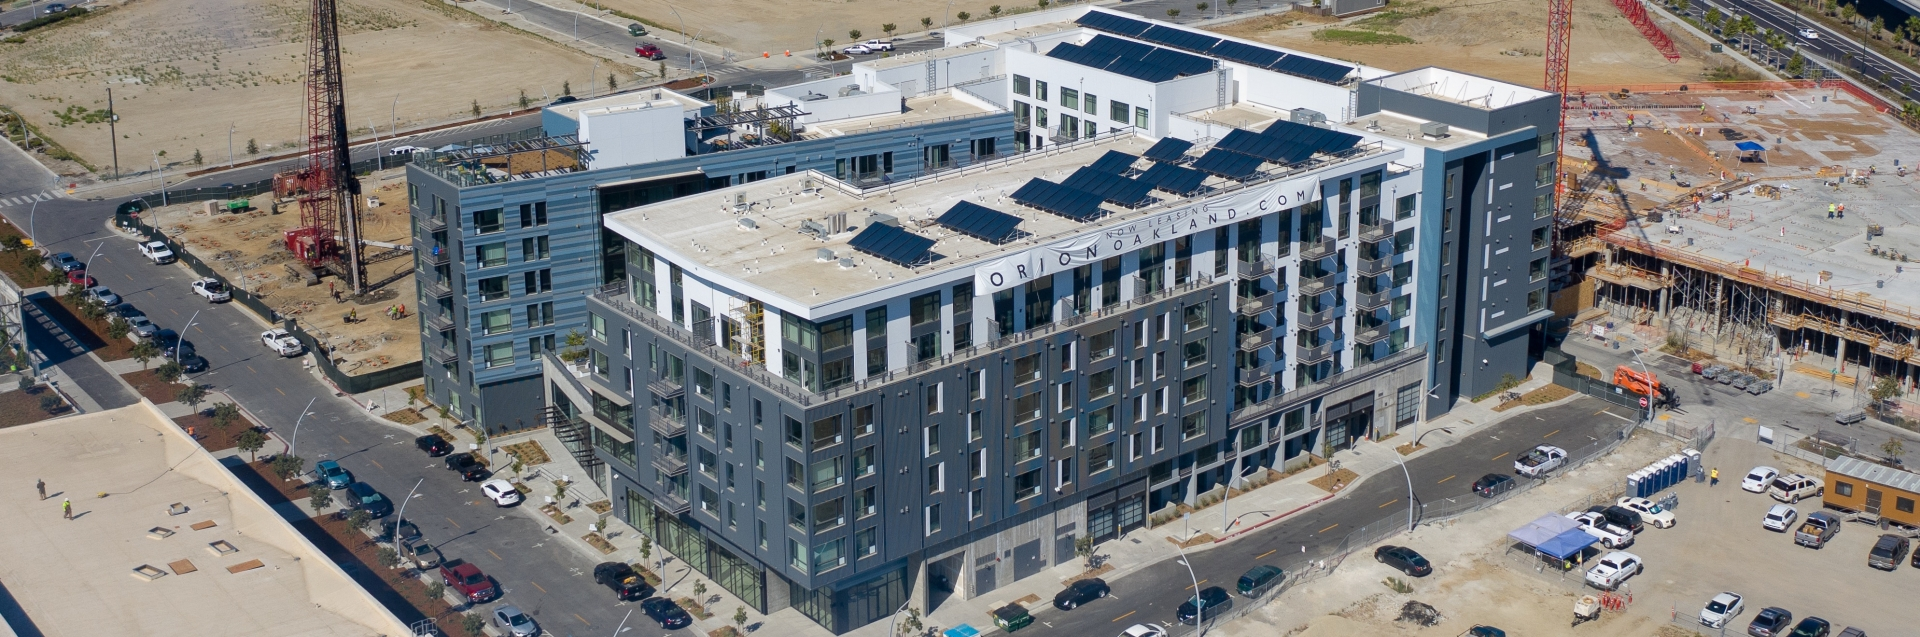 Brooklyn Basin Apartments Solar